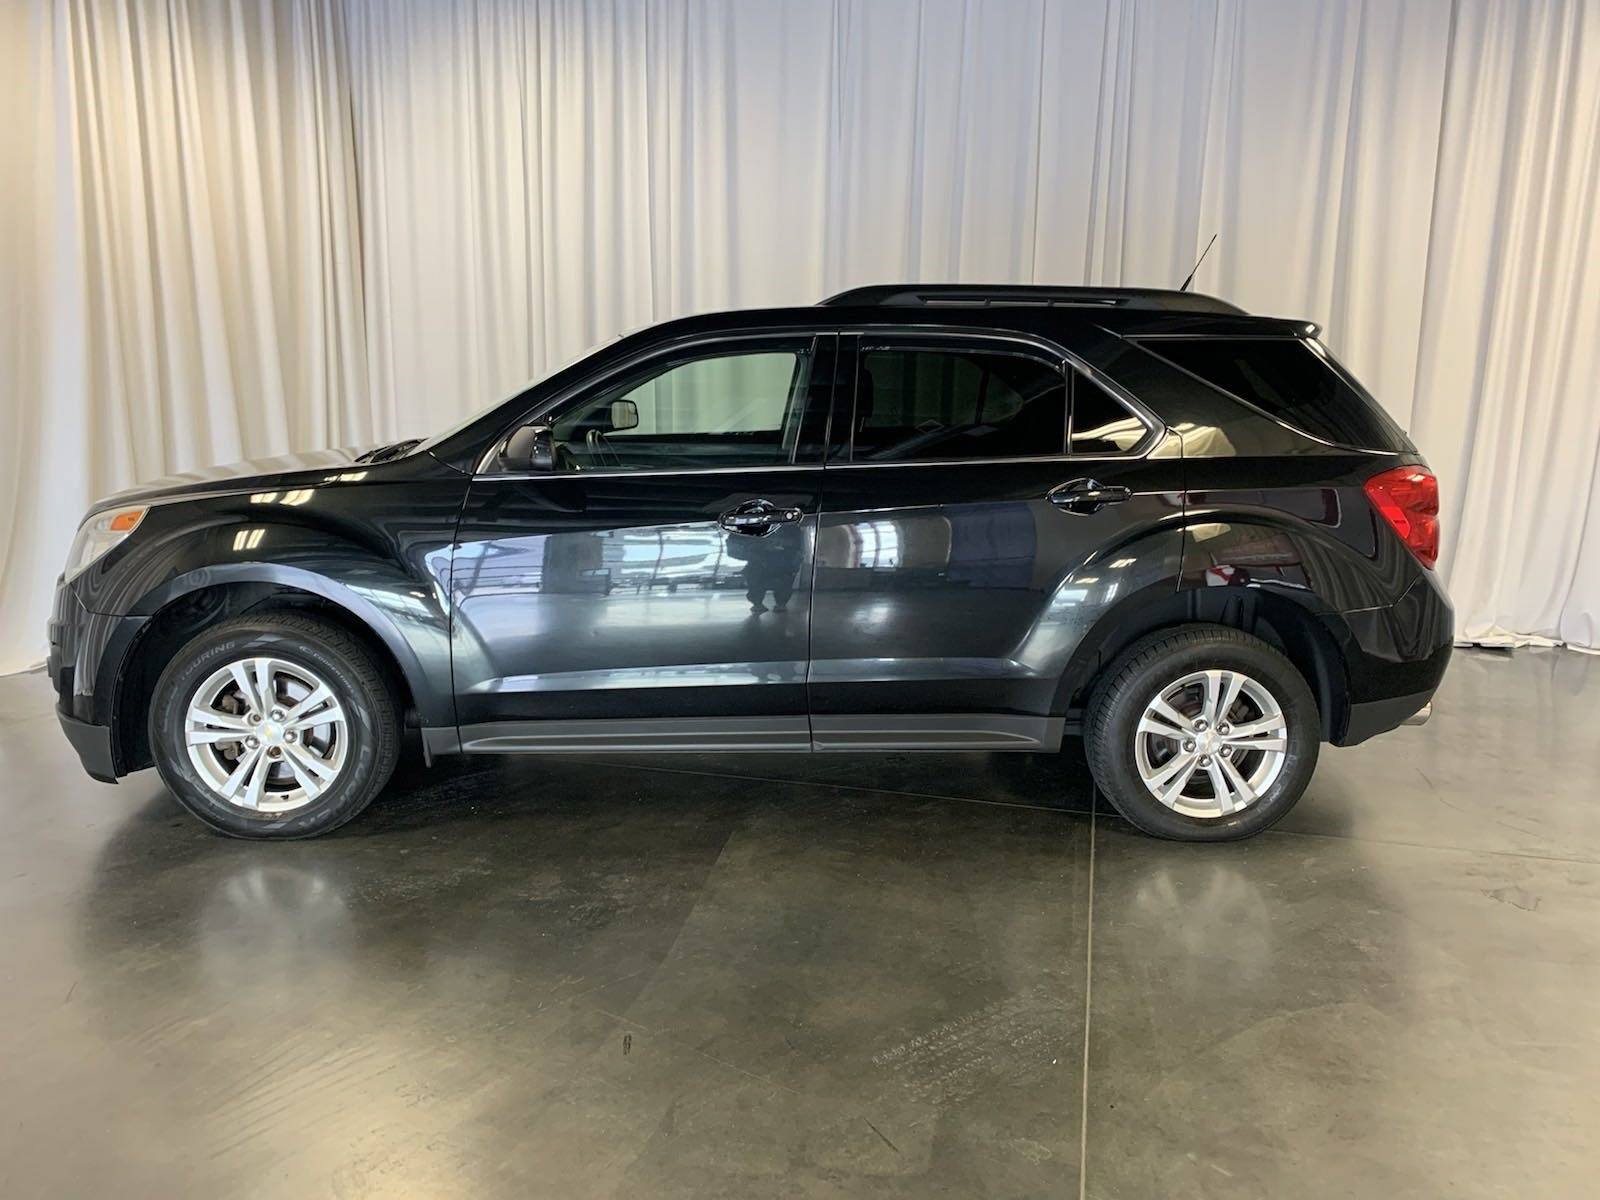 Used 2013 Chevrolet Equinox LT Sport Utility for sale in St Joseph MO